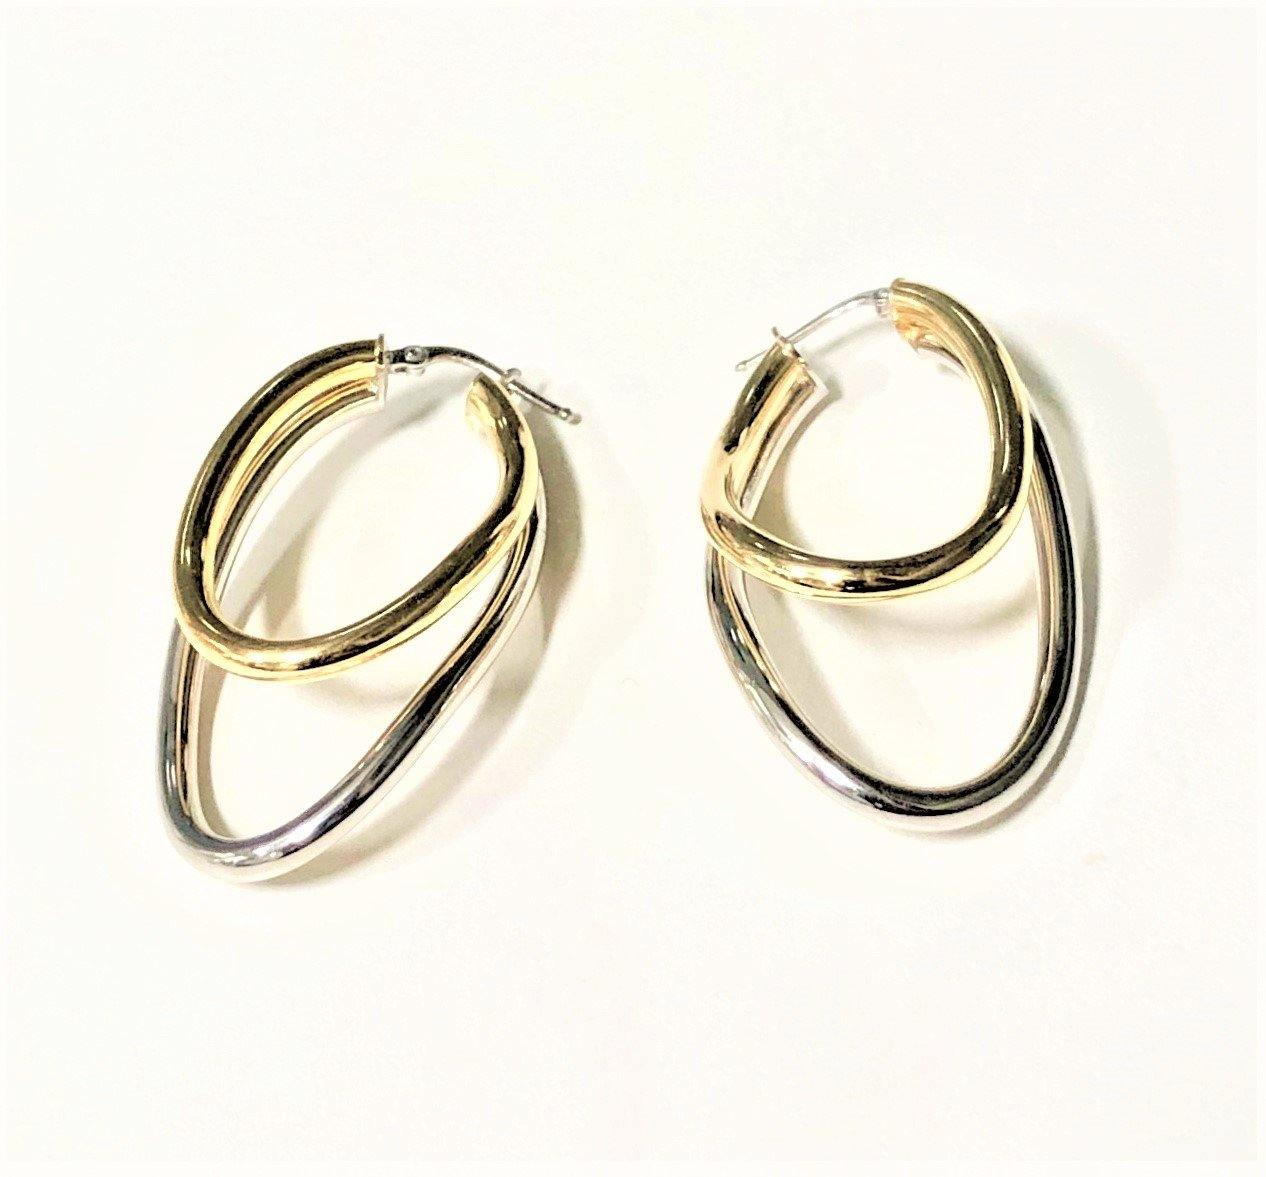 La 2 TONO DOPPIA - SALE - The Hoop Station 925 Sterling Silver Hoop Earrings Gold Huggies